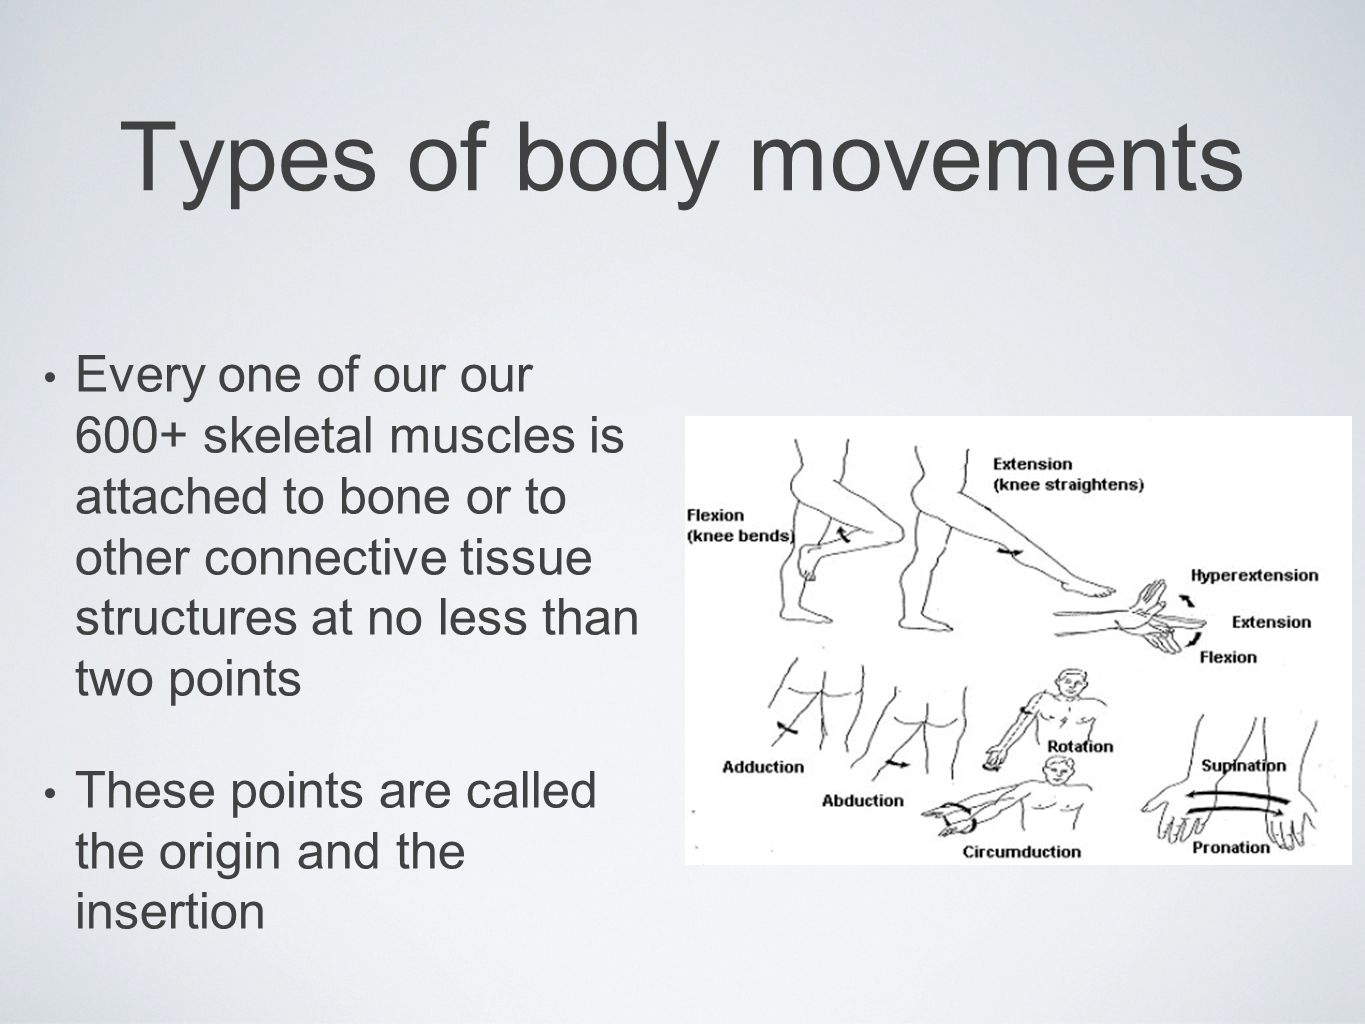 Muscle movements, types, and names - ppt video online download